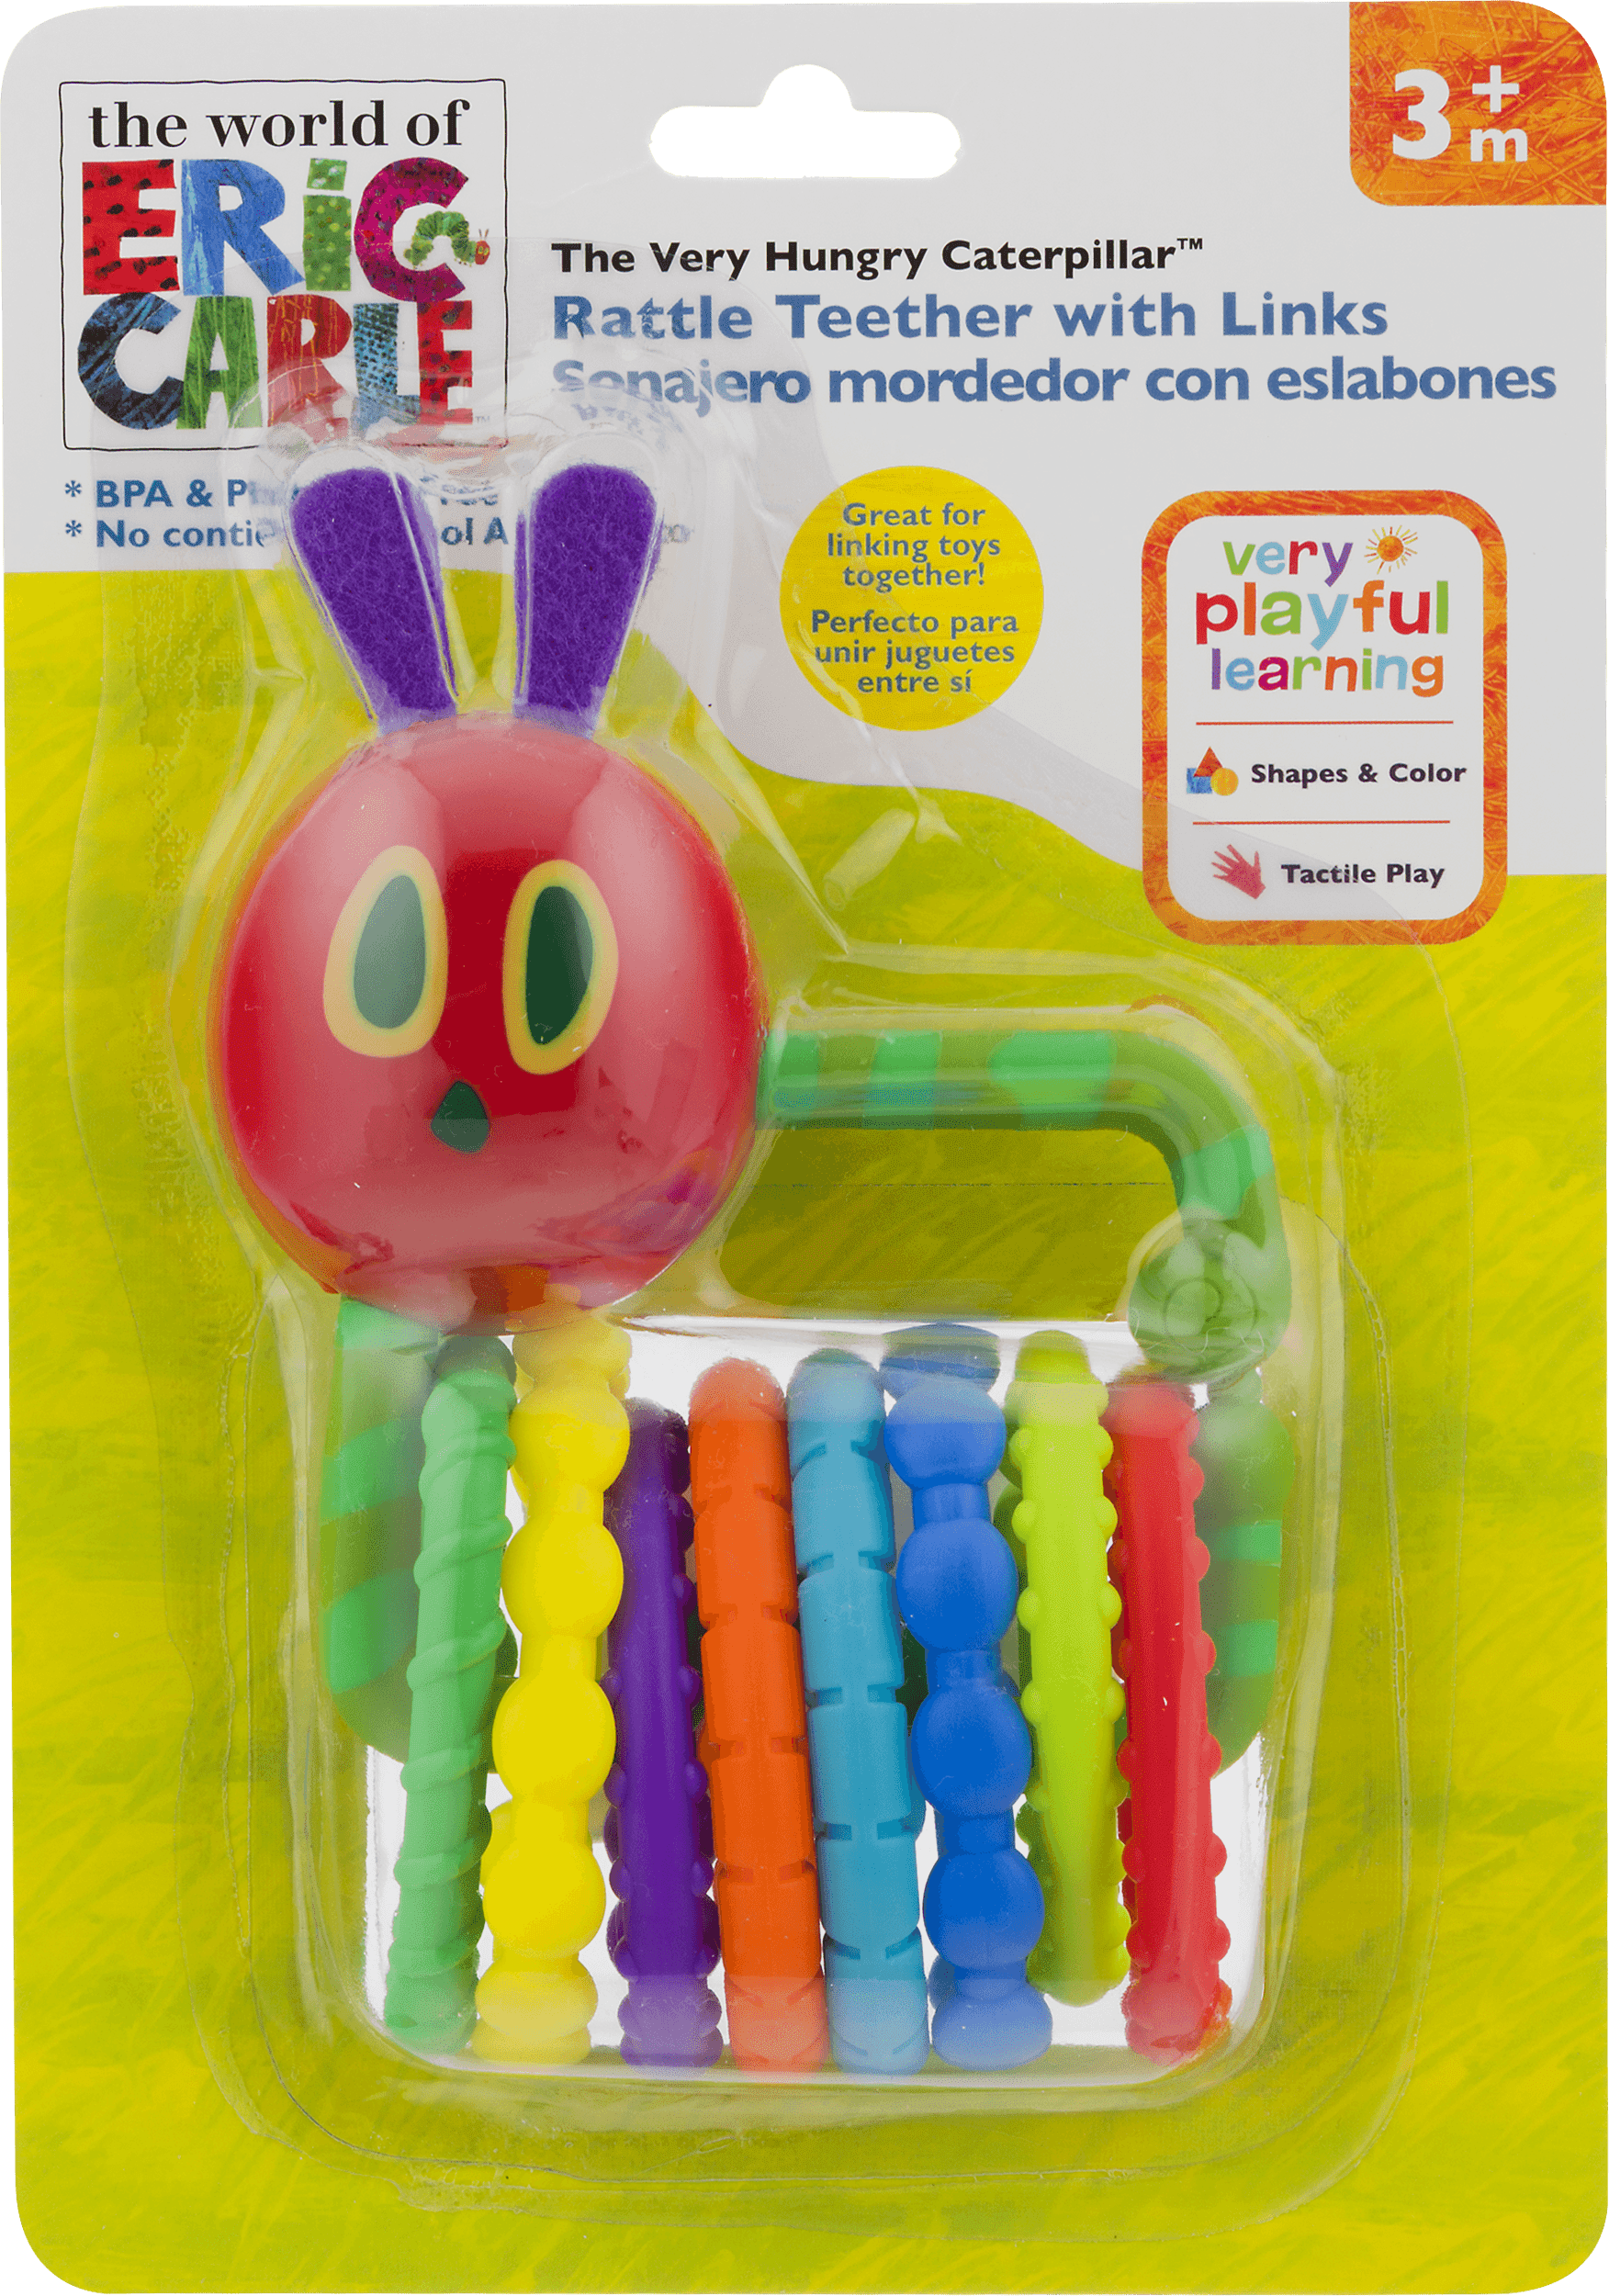 a50d3434a In The World Of Eric Carle The Very Hungry Caterpillar Rattle Teether With  Links 3+m, 1.0 CT - Walmart.com